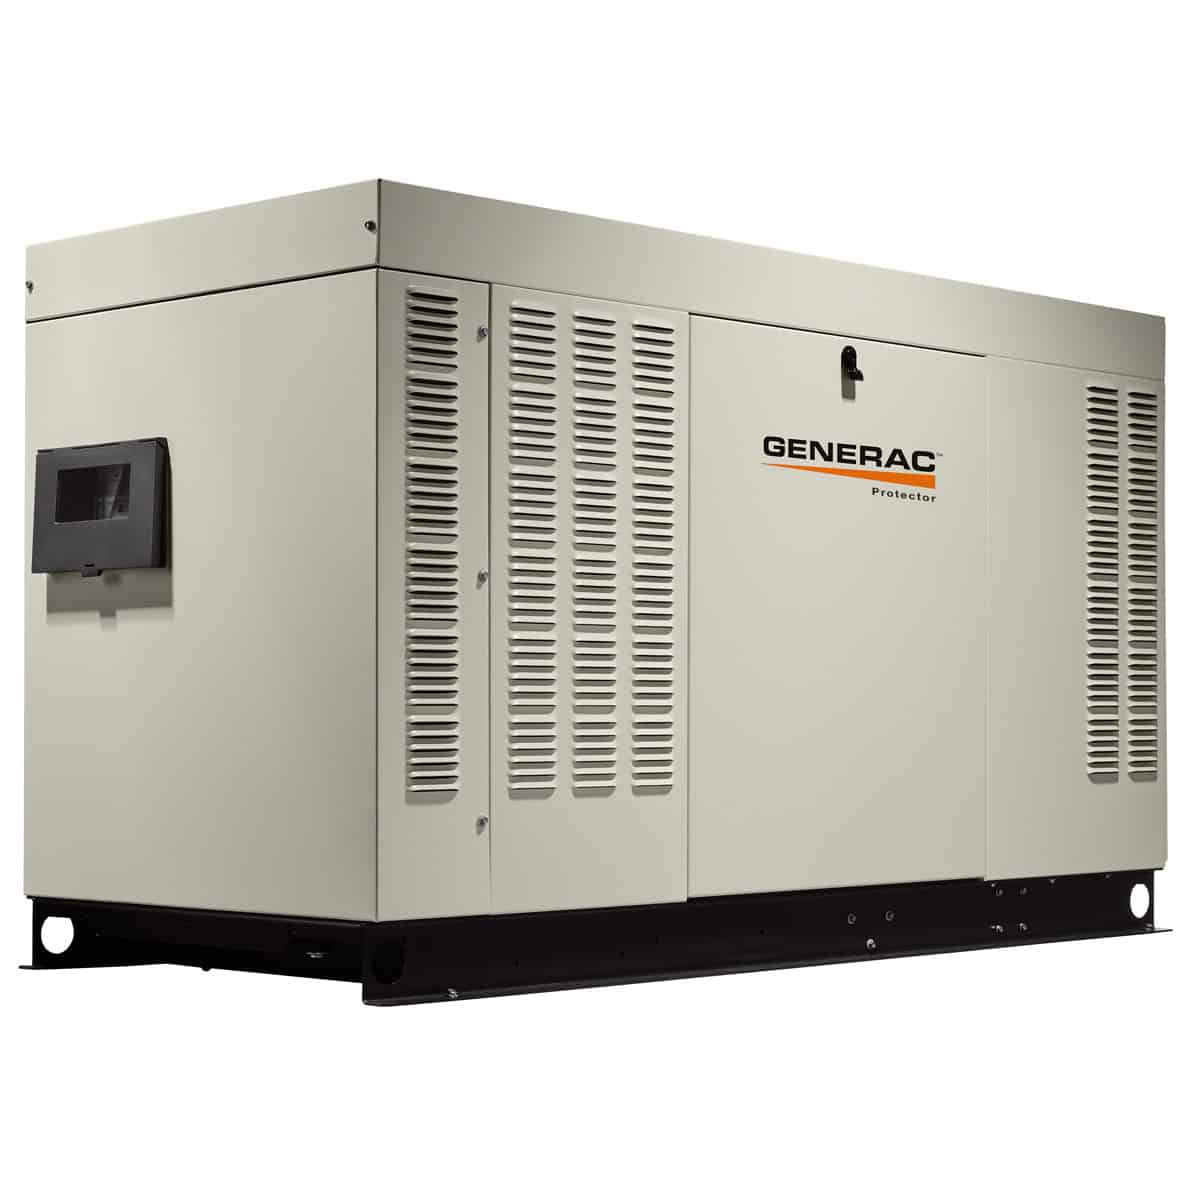 3 Phase 22kw Generator Schematics Trusted Wiring Diagrams Generac 120 208v Ng Lp Norwall Powersystems Internal Diagram